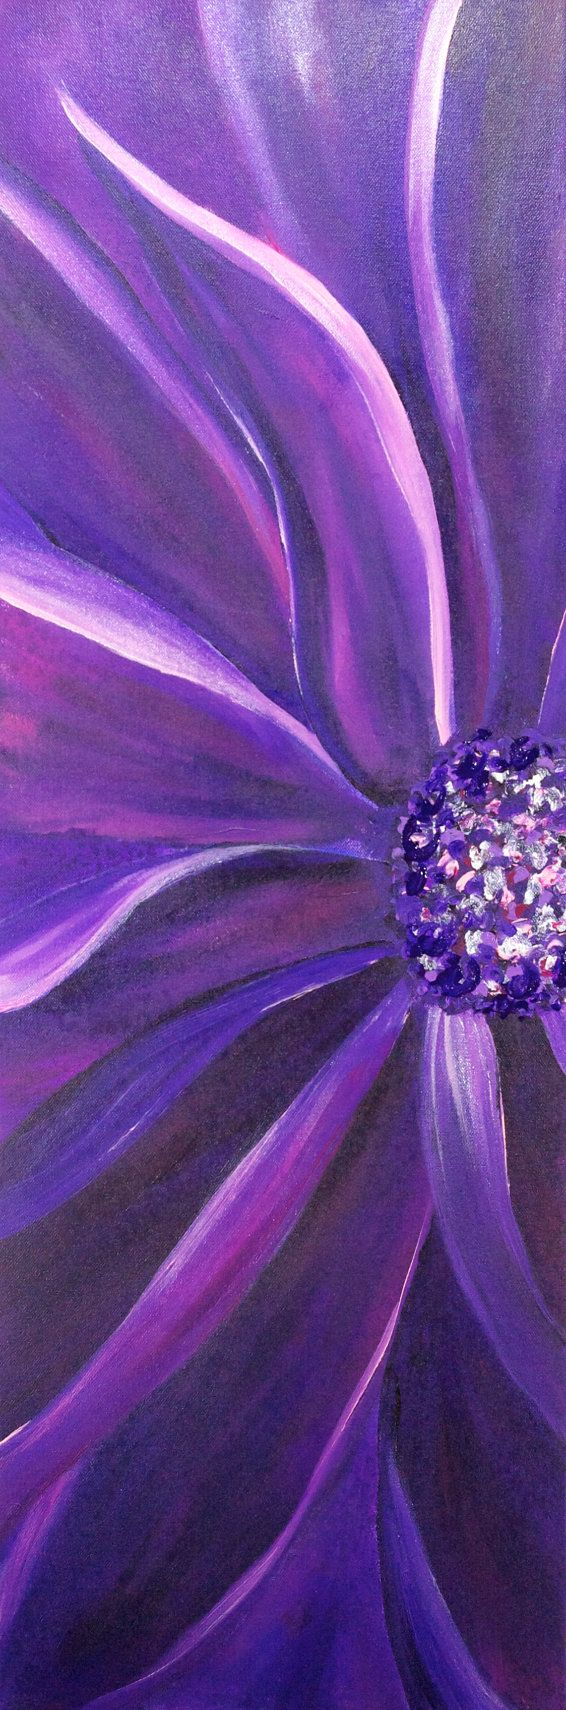 Purple Flower Original Abstract Acrylic Wall Painting by jewel4u